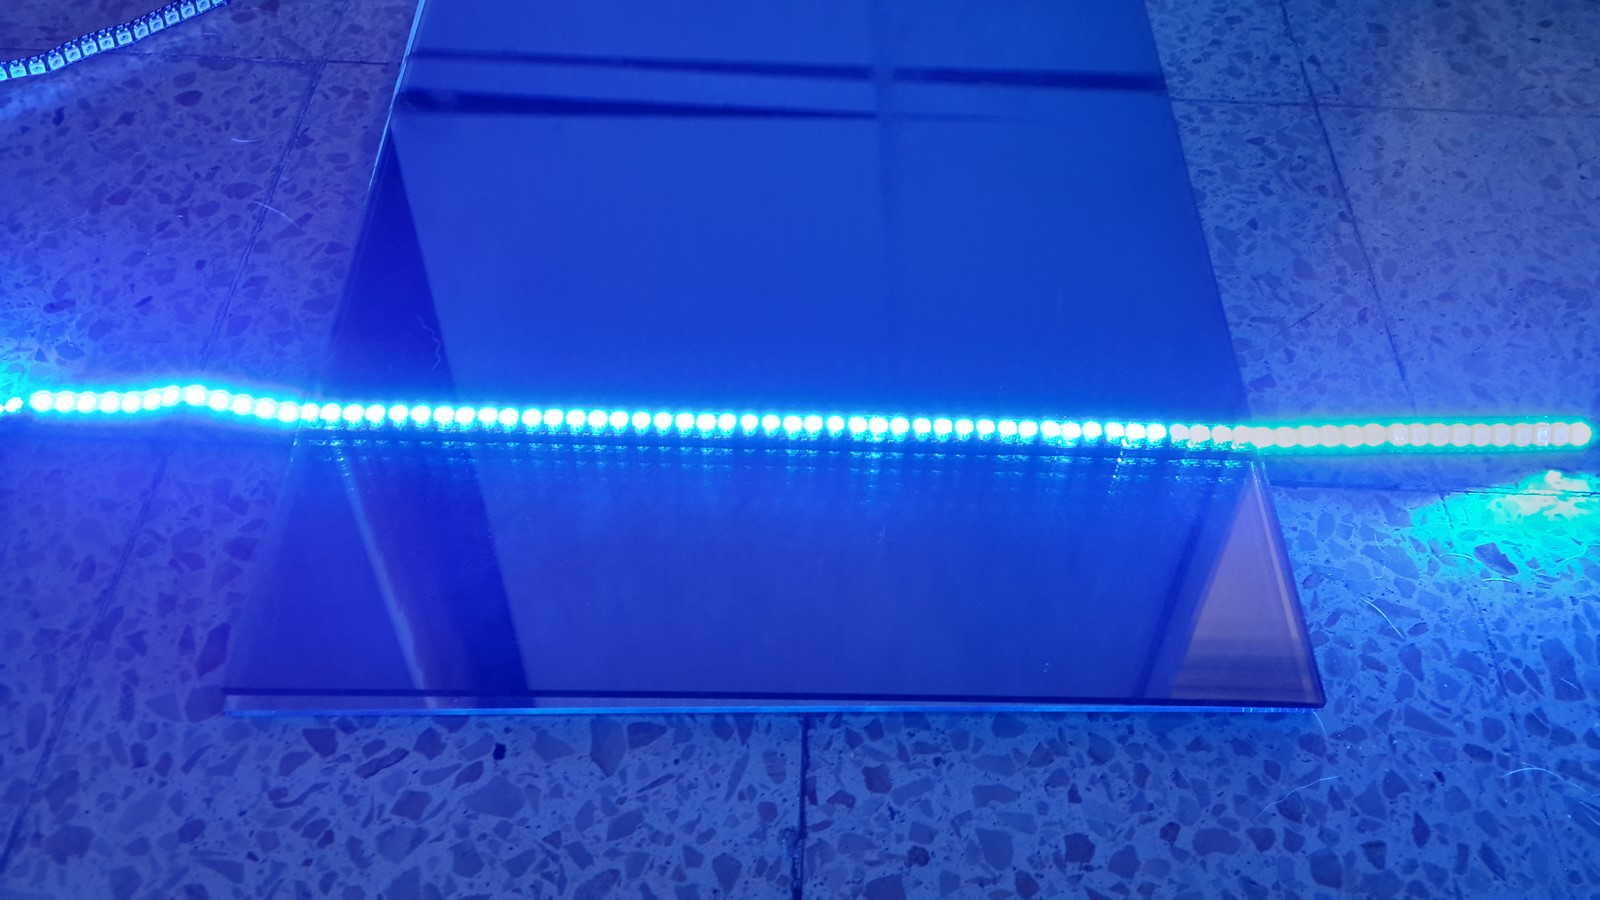 WS2812 Infinity mirror up